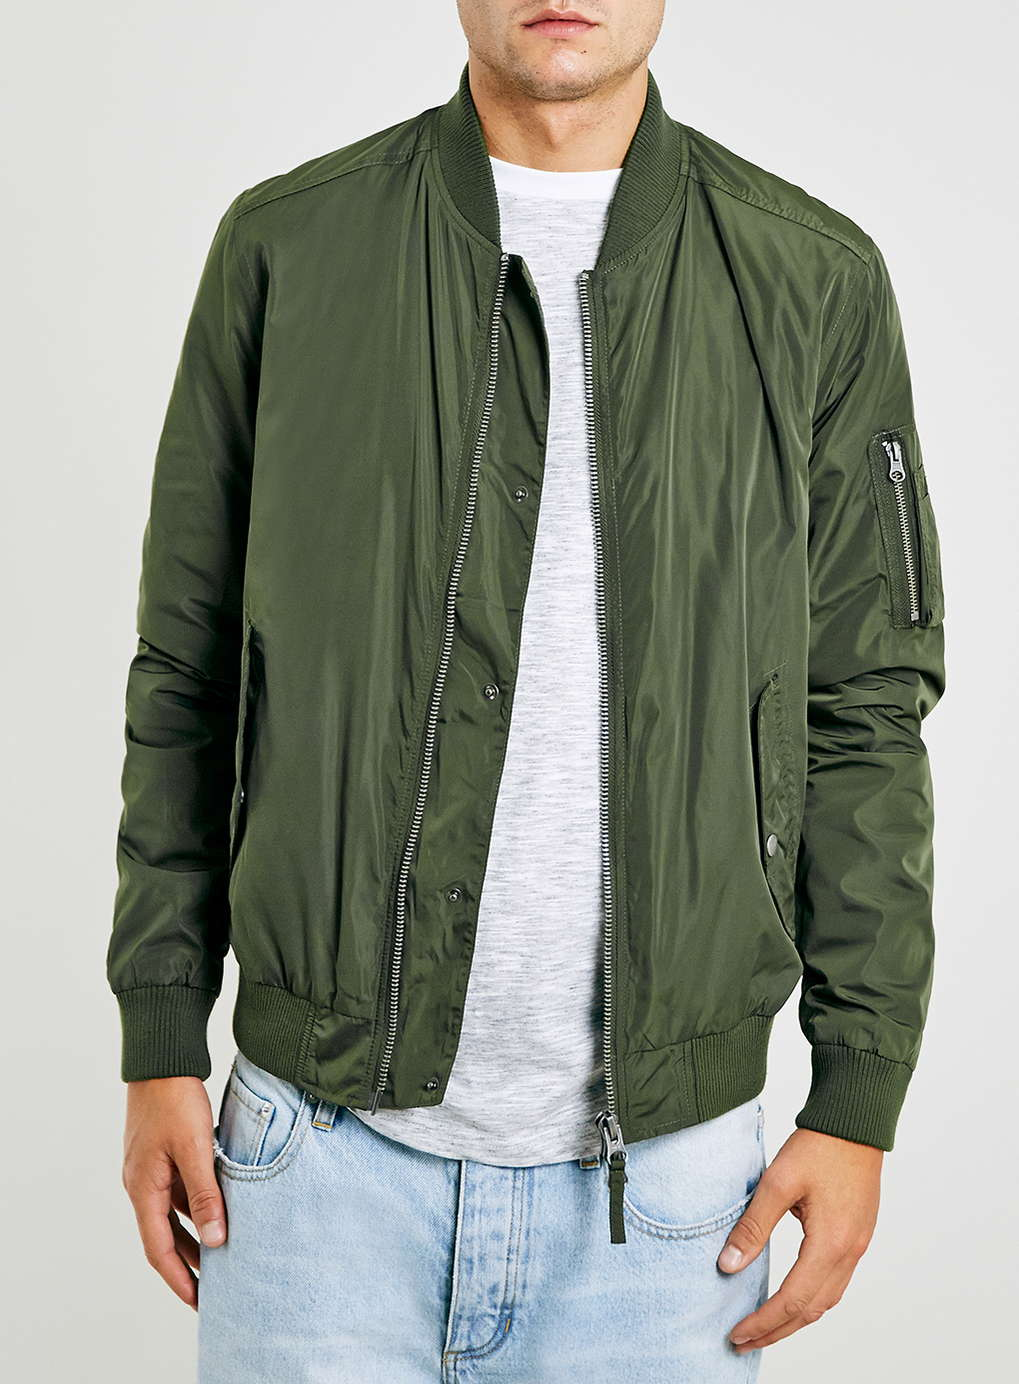 Very Goods Khaki Bomber Jacket Mens Coats Jackets Clothing